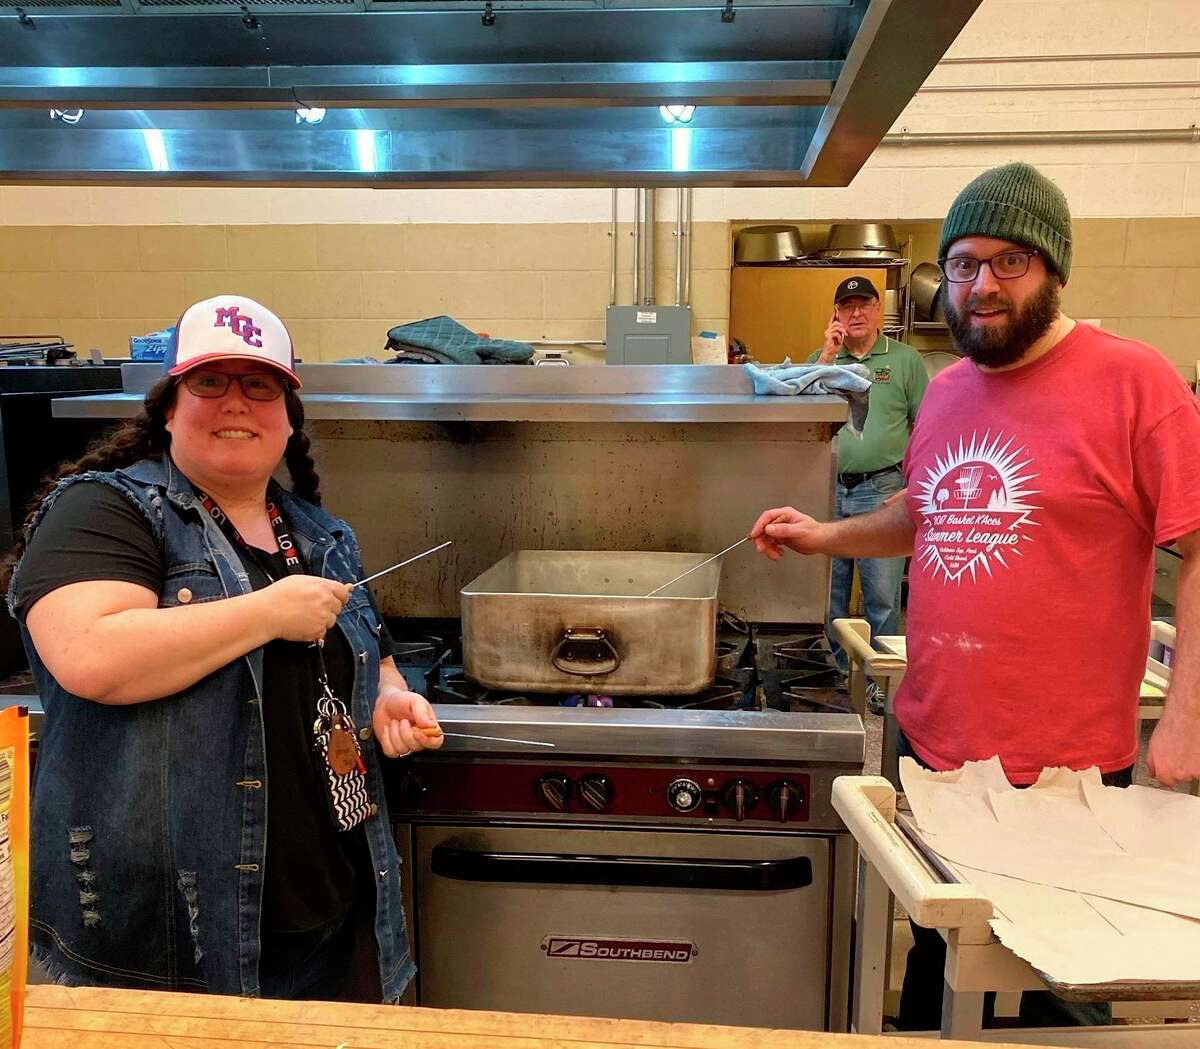 In this file photo, Aisha Newenhouse and Joe Korzeniewski are shown getting the oil ready to fry another batch ofpaczki fortheManistee Catholic Central Athletic Association's paczki fundraiser last year. (File photo)